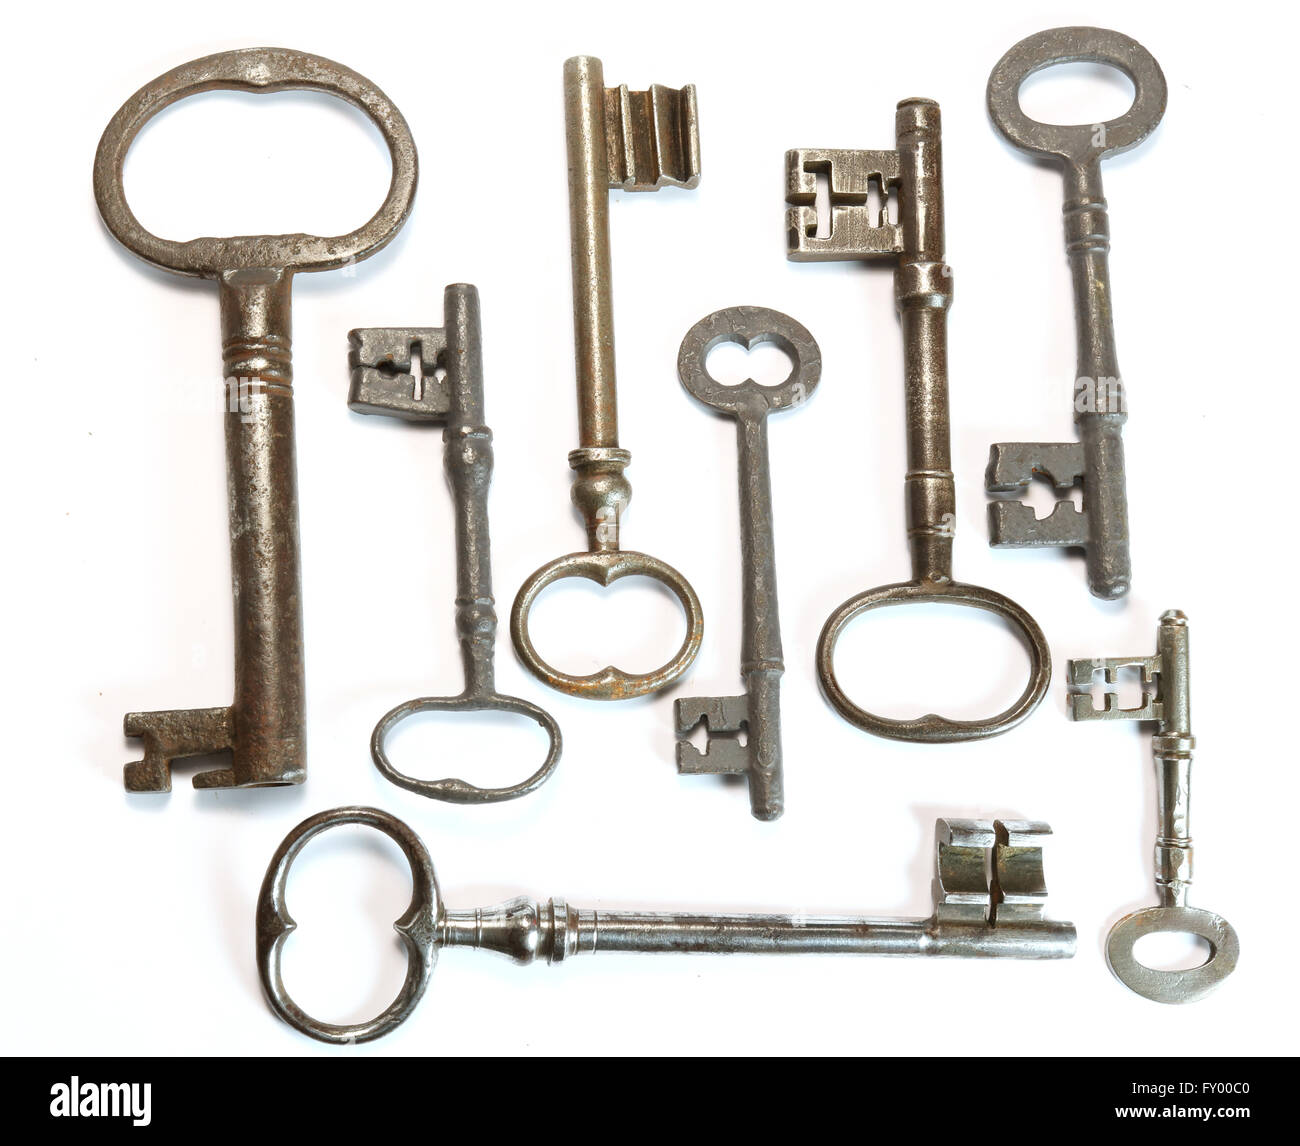 Vintage Antique Keys on white background Stock Photo